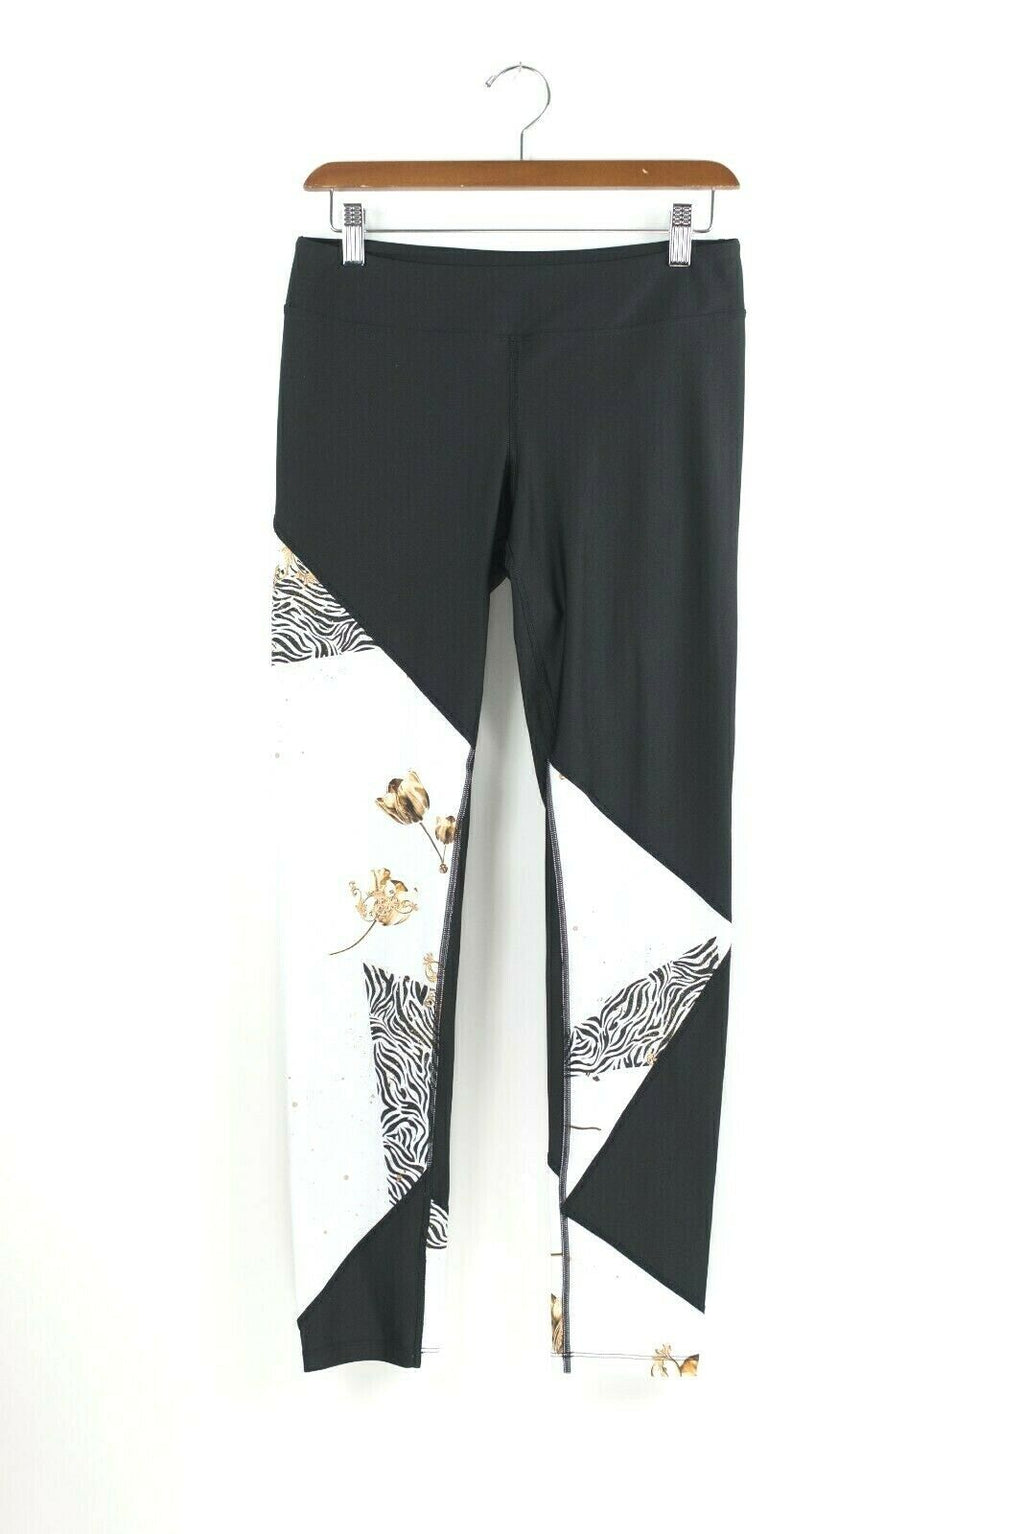 We Are Handsome Womens Large Black White Leggings Heat Seven Basque Pants NWT